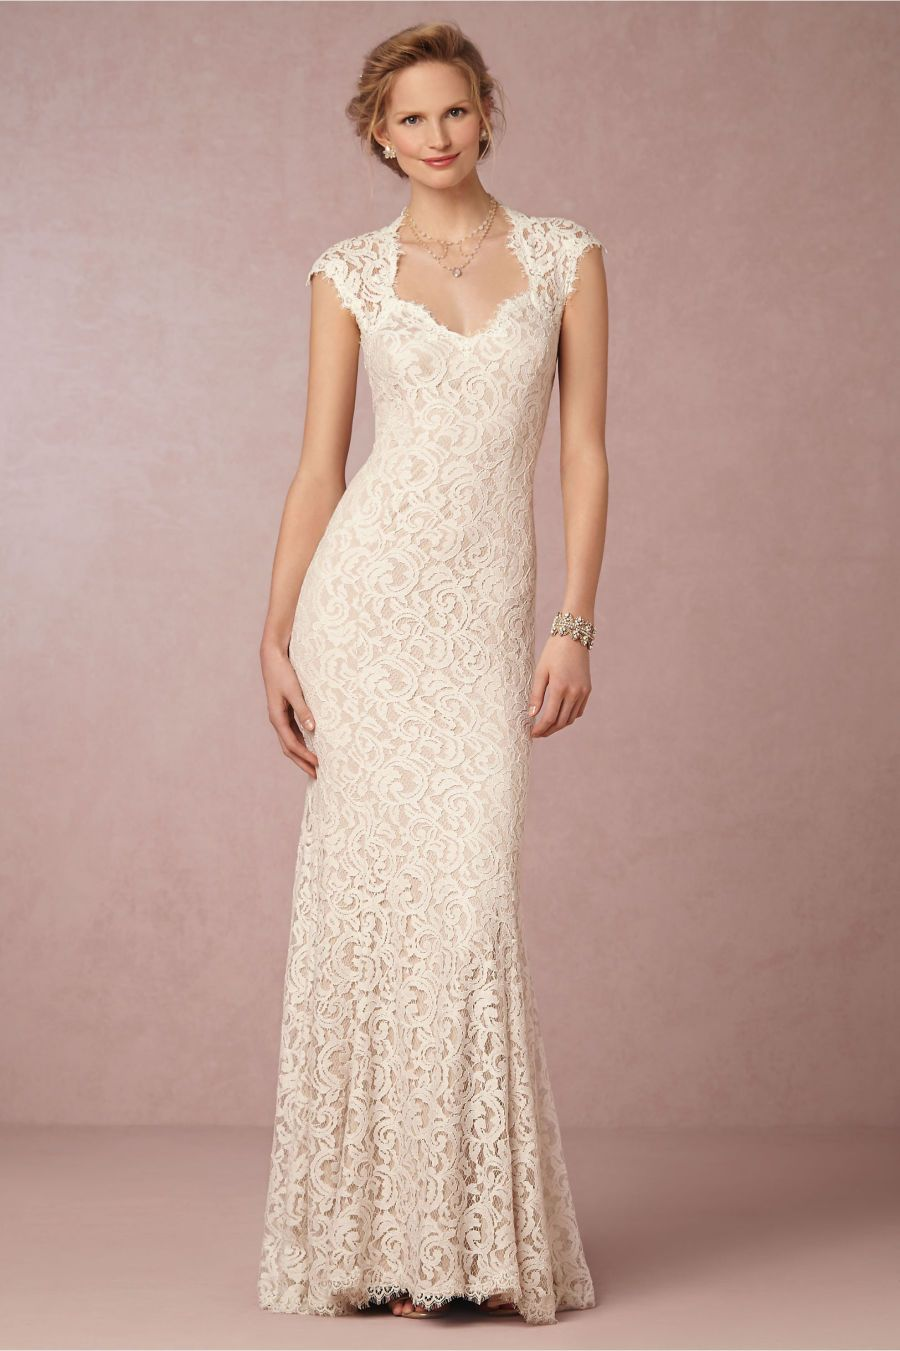 50 Gorgeous Wedding Dresses You Won T Believe Cost Less Than